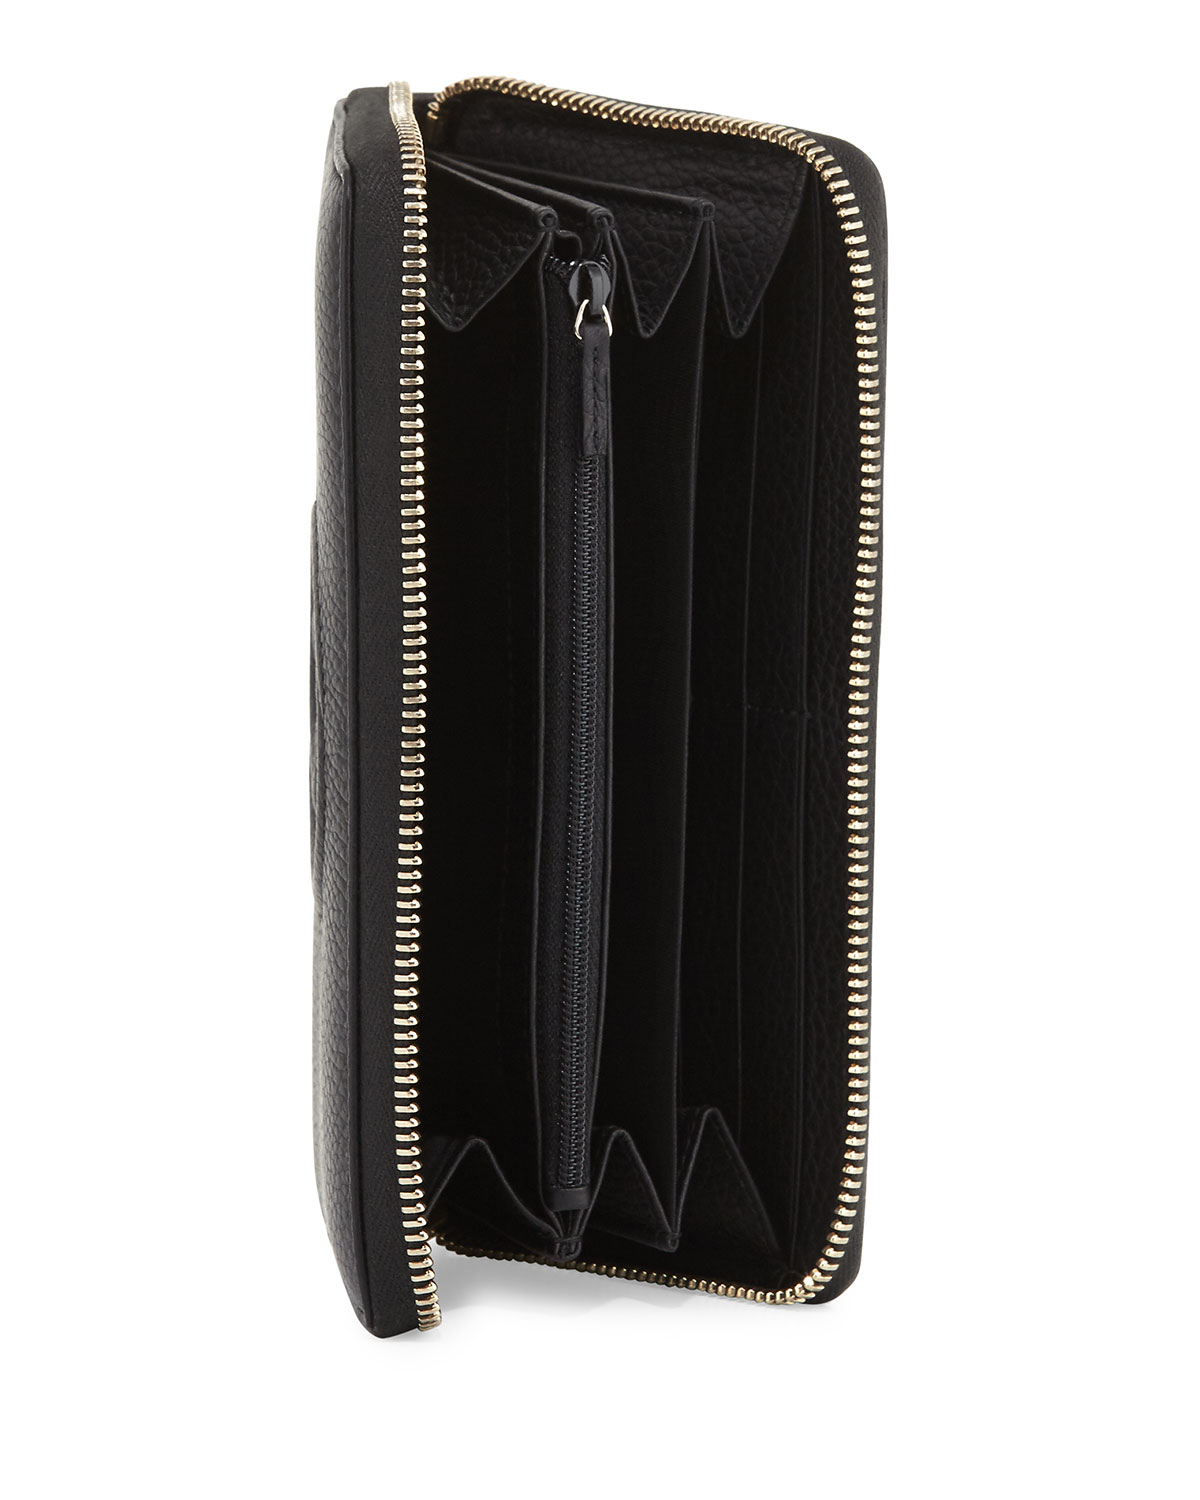 86e6035a42f5 Gucci Soho Leather Zip-Around Wallet, Black | Neiman Marcus